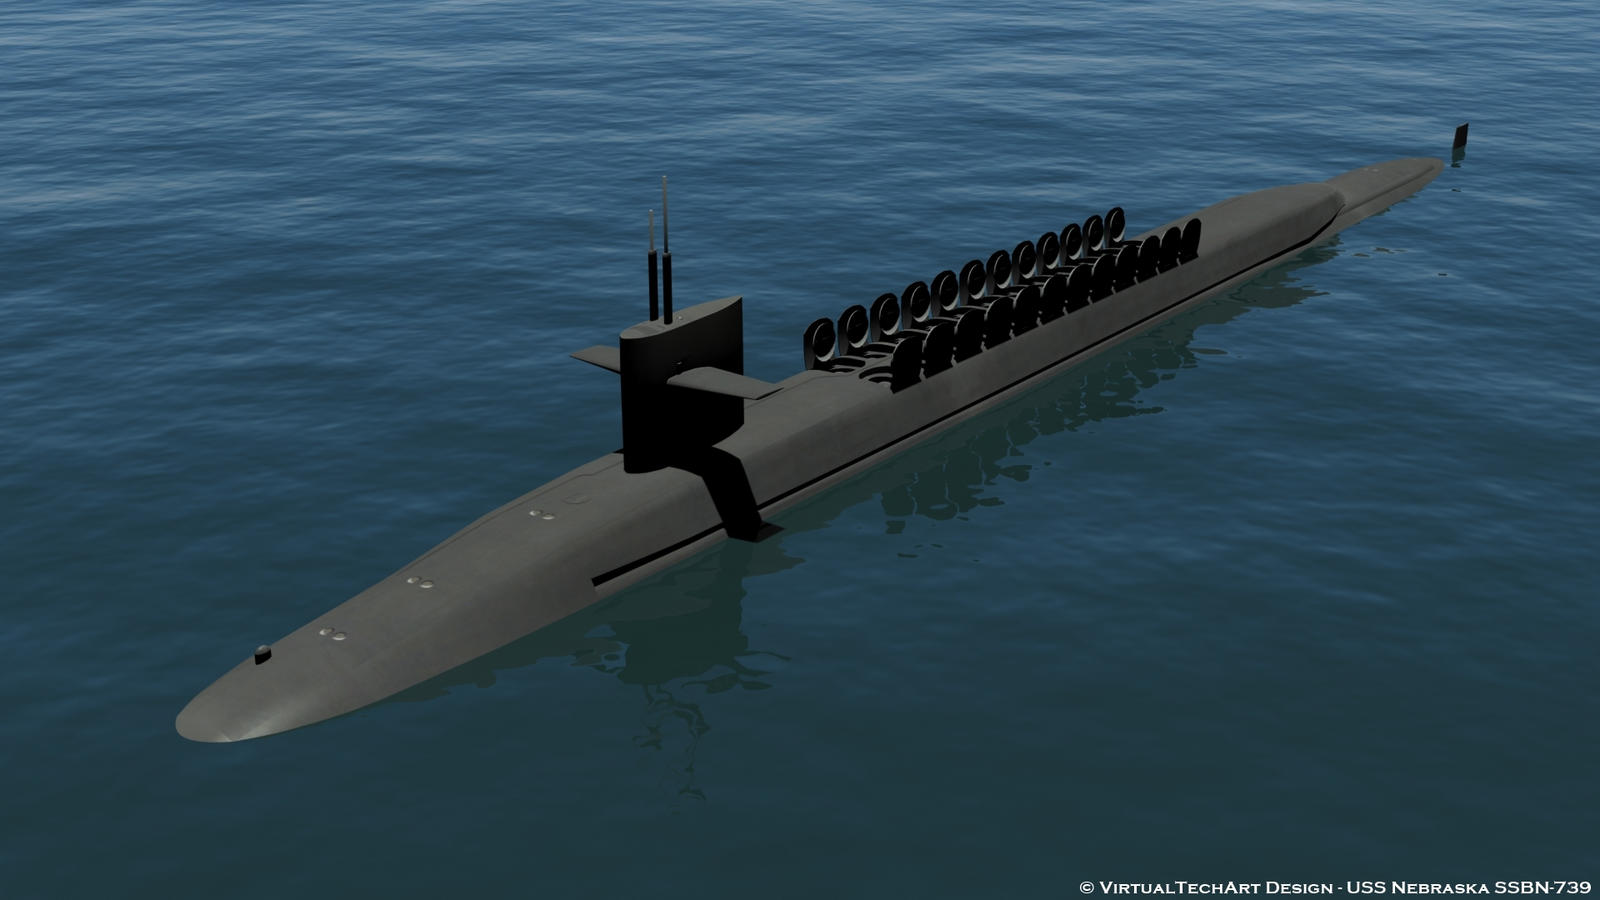 buy helicopters with Uss Nebraska Ssbn 739 395283865 on Kazi Sluban Building Blocks Field Army Military Transport 151071098682 furthermore Westland Aw101 Vvip together with Afv drawings additionally UNSC Falcon 337617201 further Leonardo S Aerial Screw 349862542.